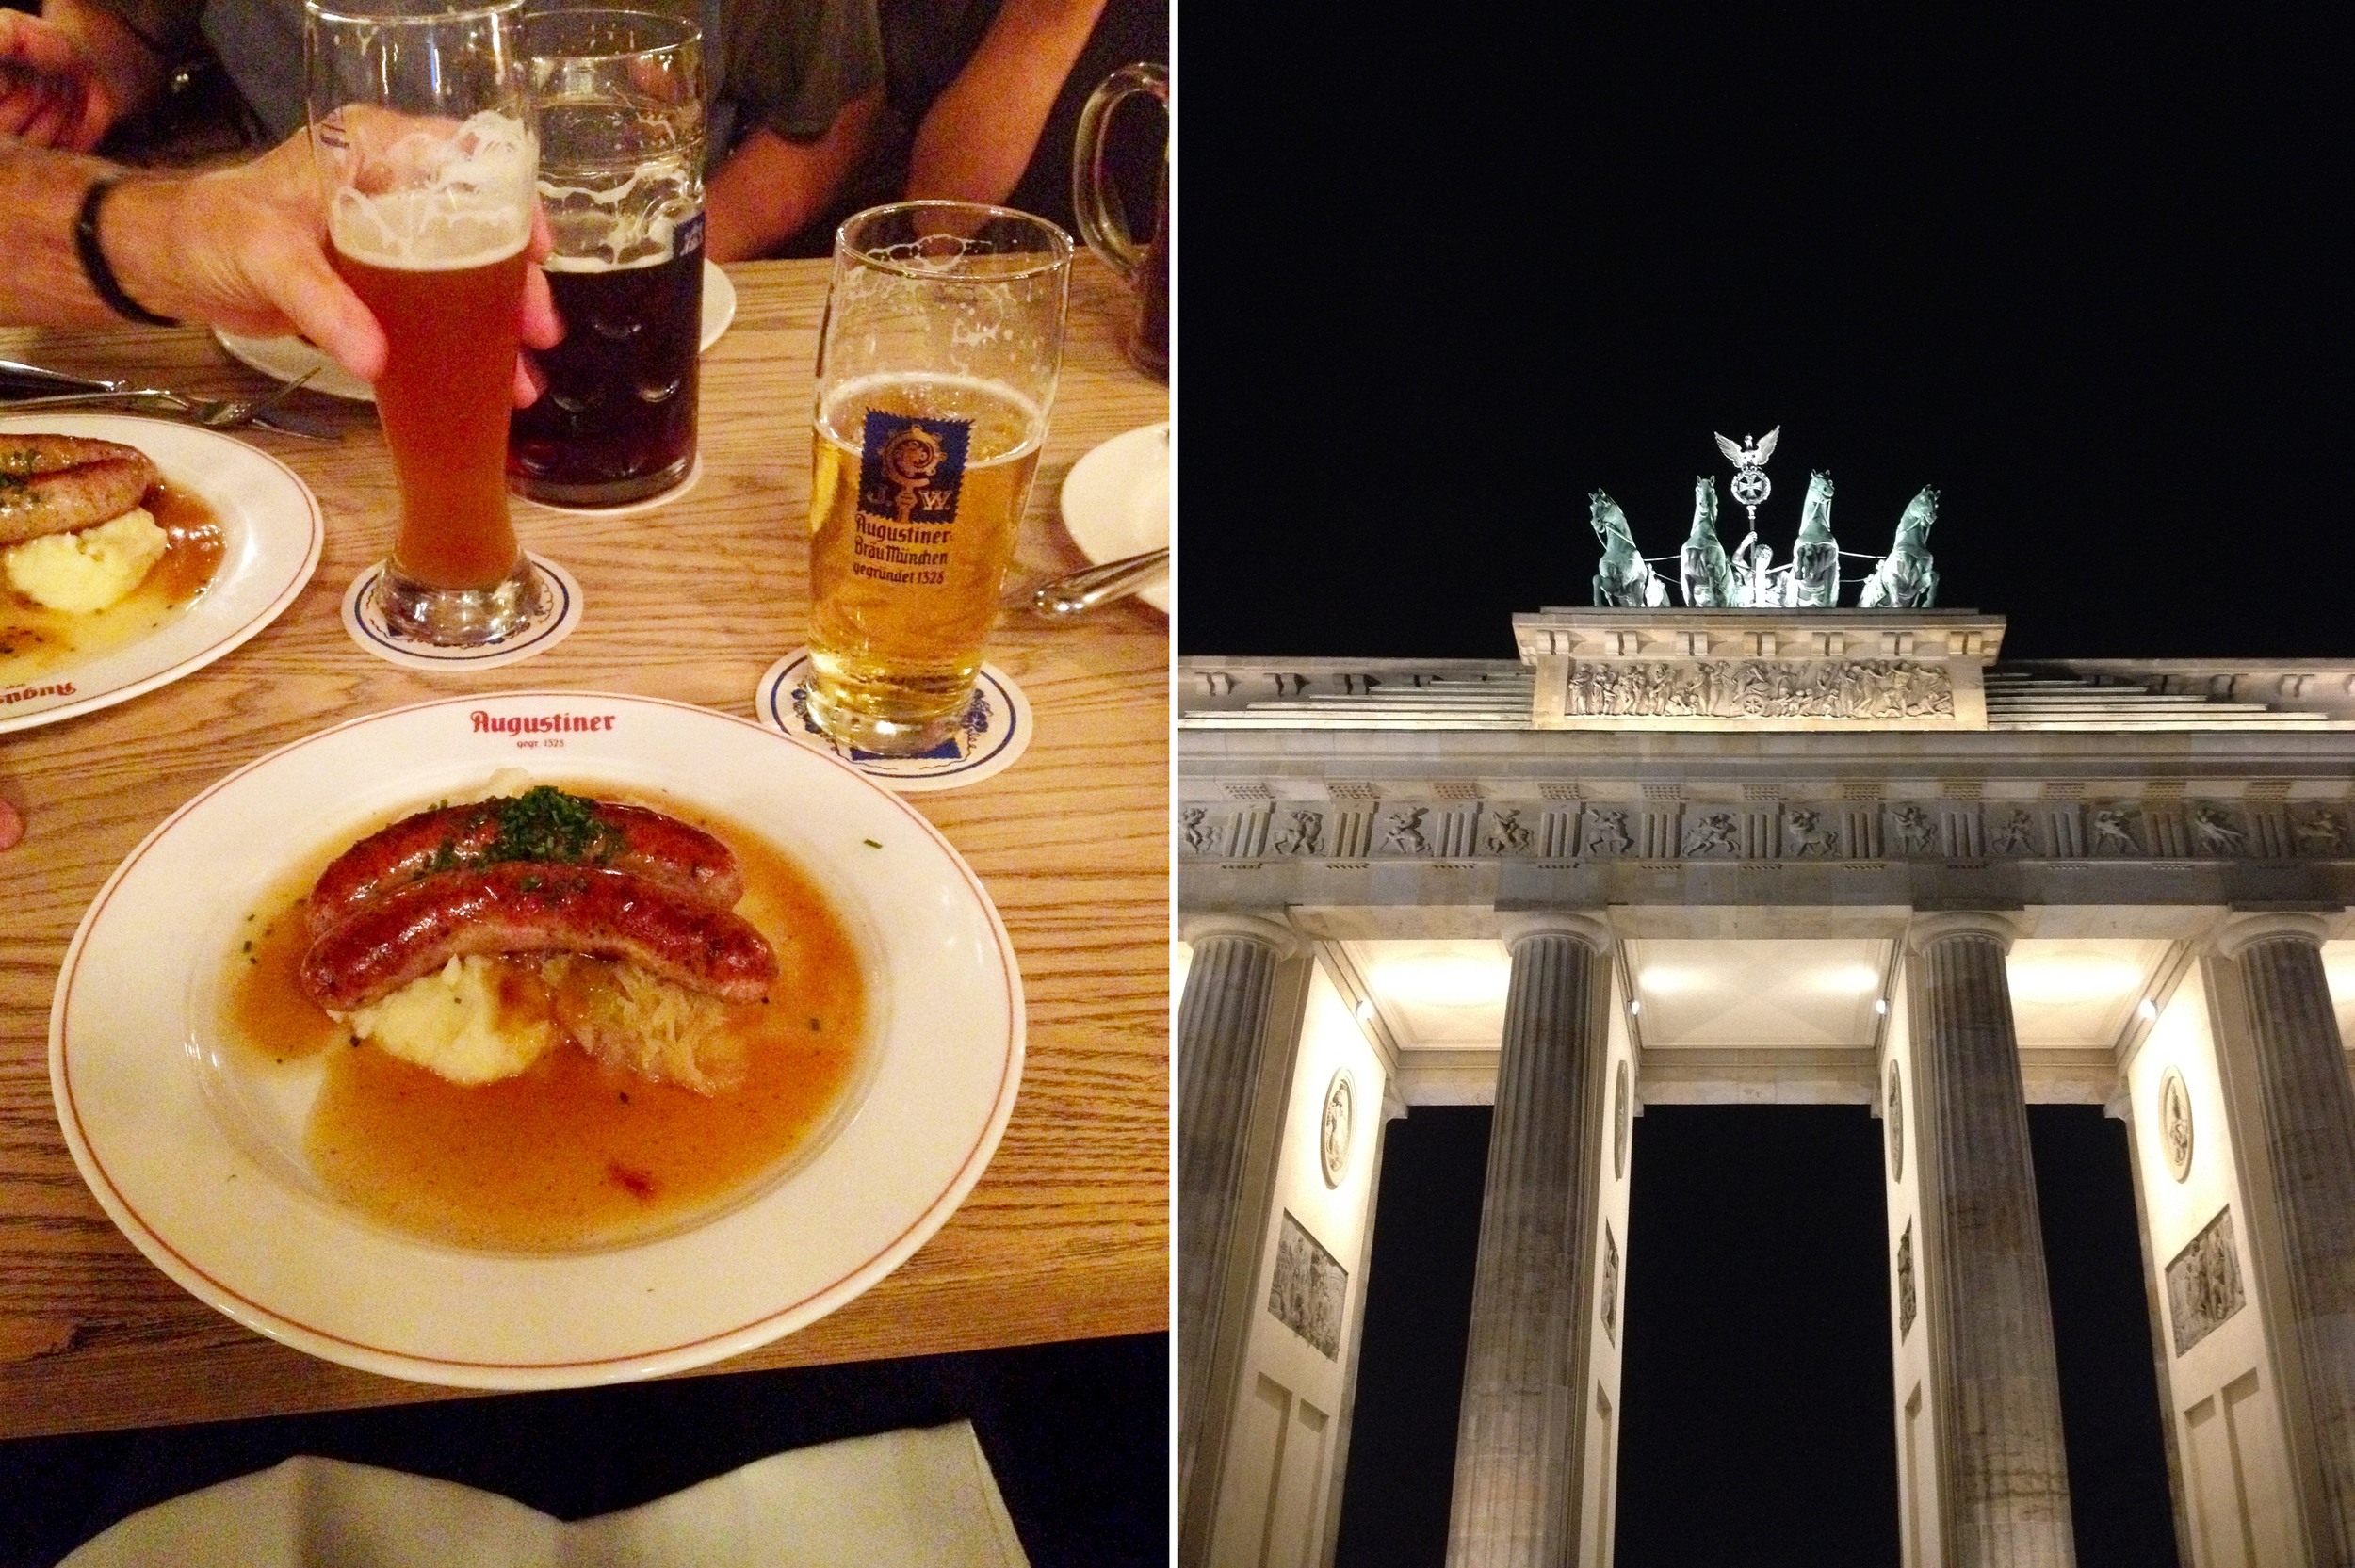 Left: Grilled sausage with mashed potatoes and sauerkraut and my brother's huge dark beer in the background. Right: The Brandenburg Gate lit up at night.